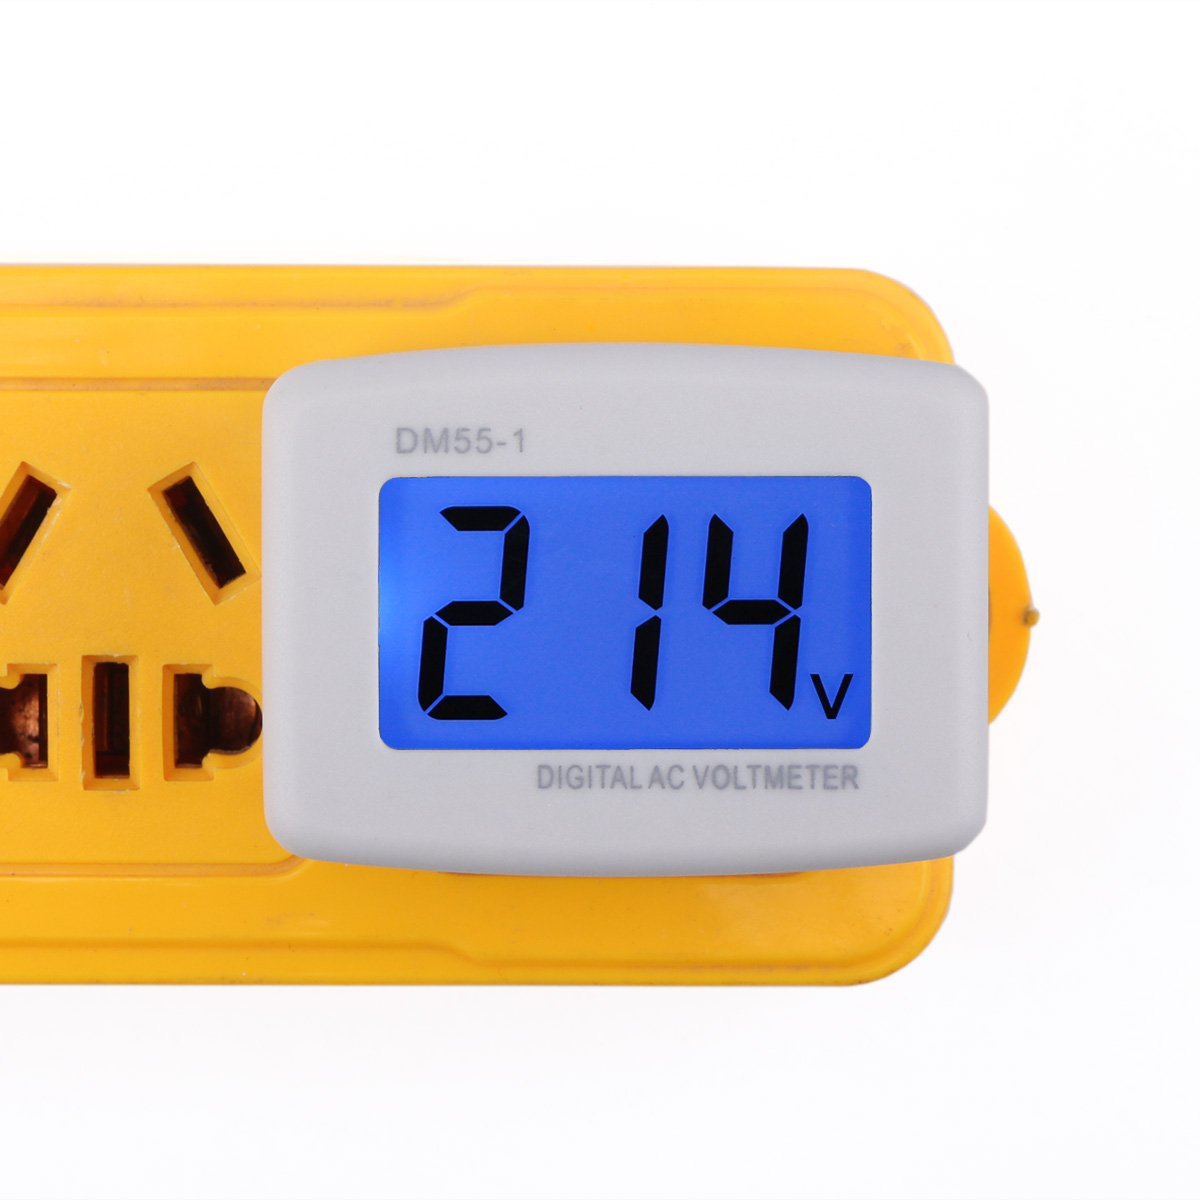 Cheap 220 Volt Ac Plug Find Deals On Line At How To Build 110 And 220v Led Voltage Indicator Get Quotations Drok 90538 Flat 80 300v Panel Power Test Monitor Gauge